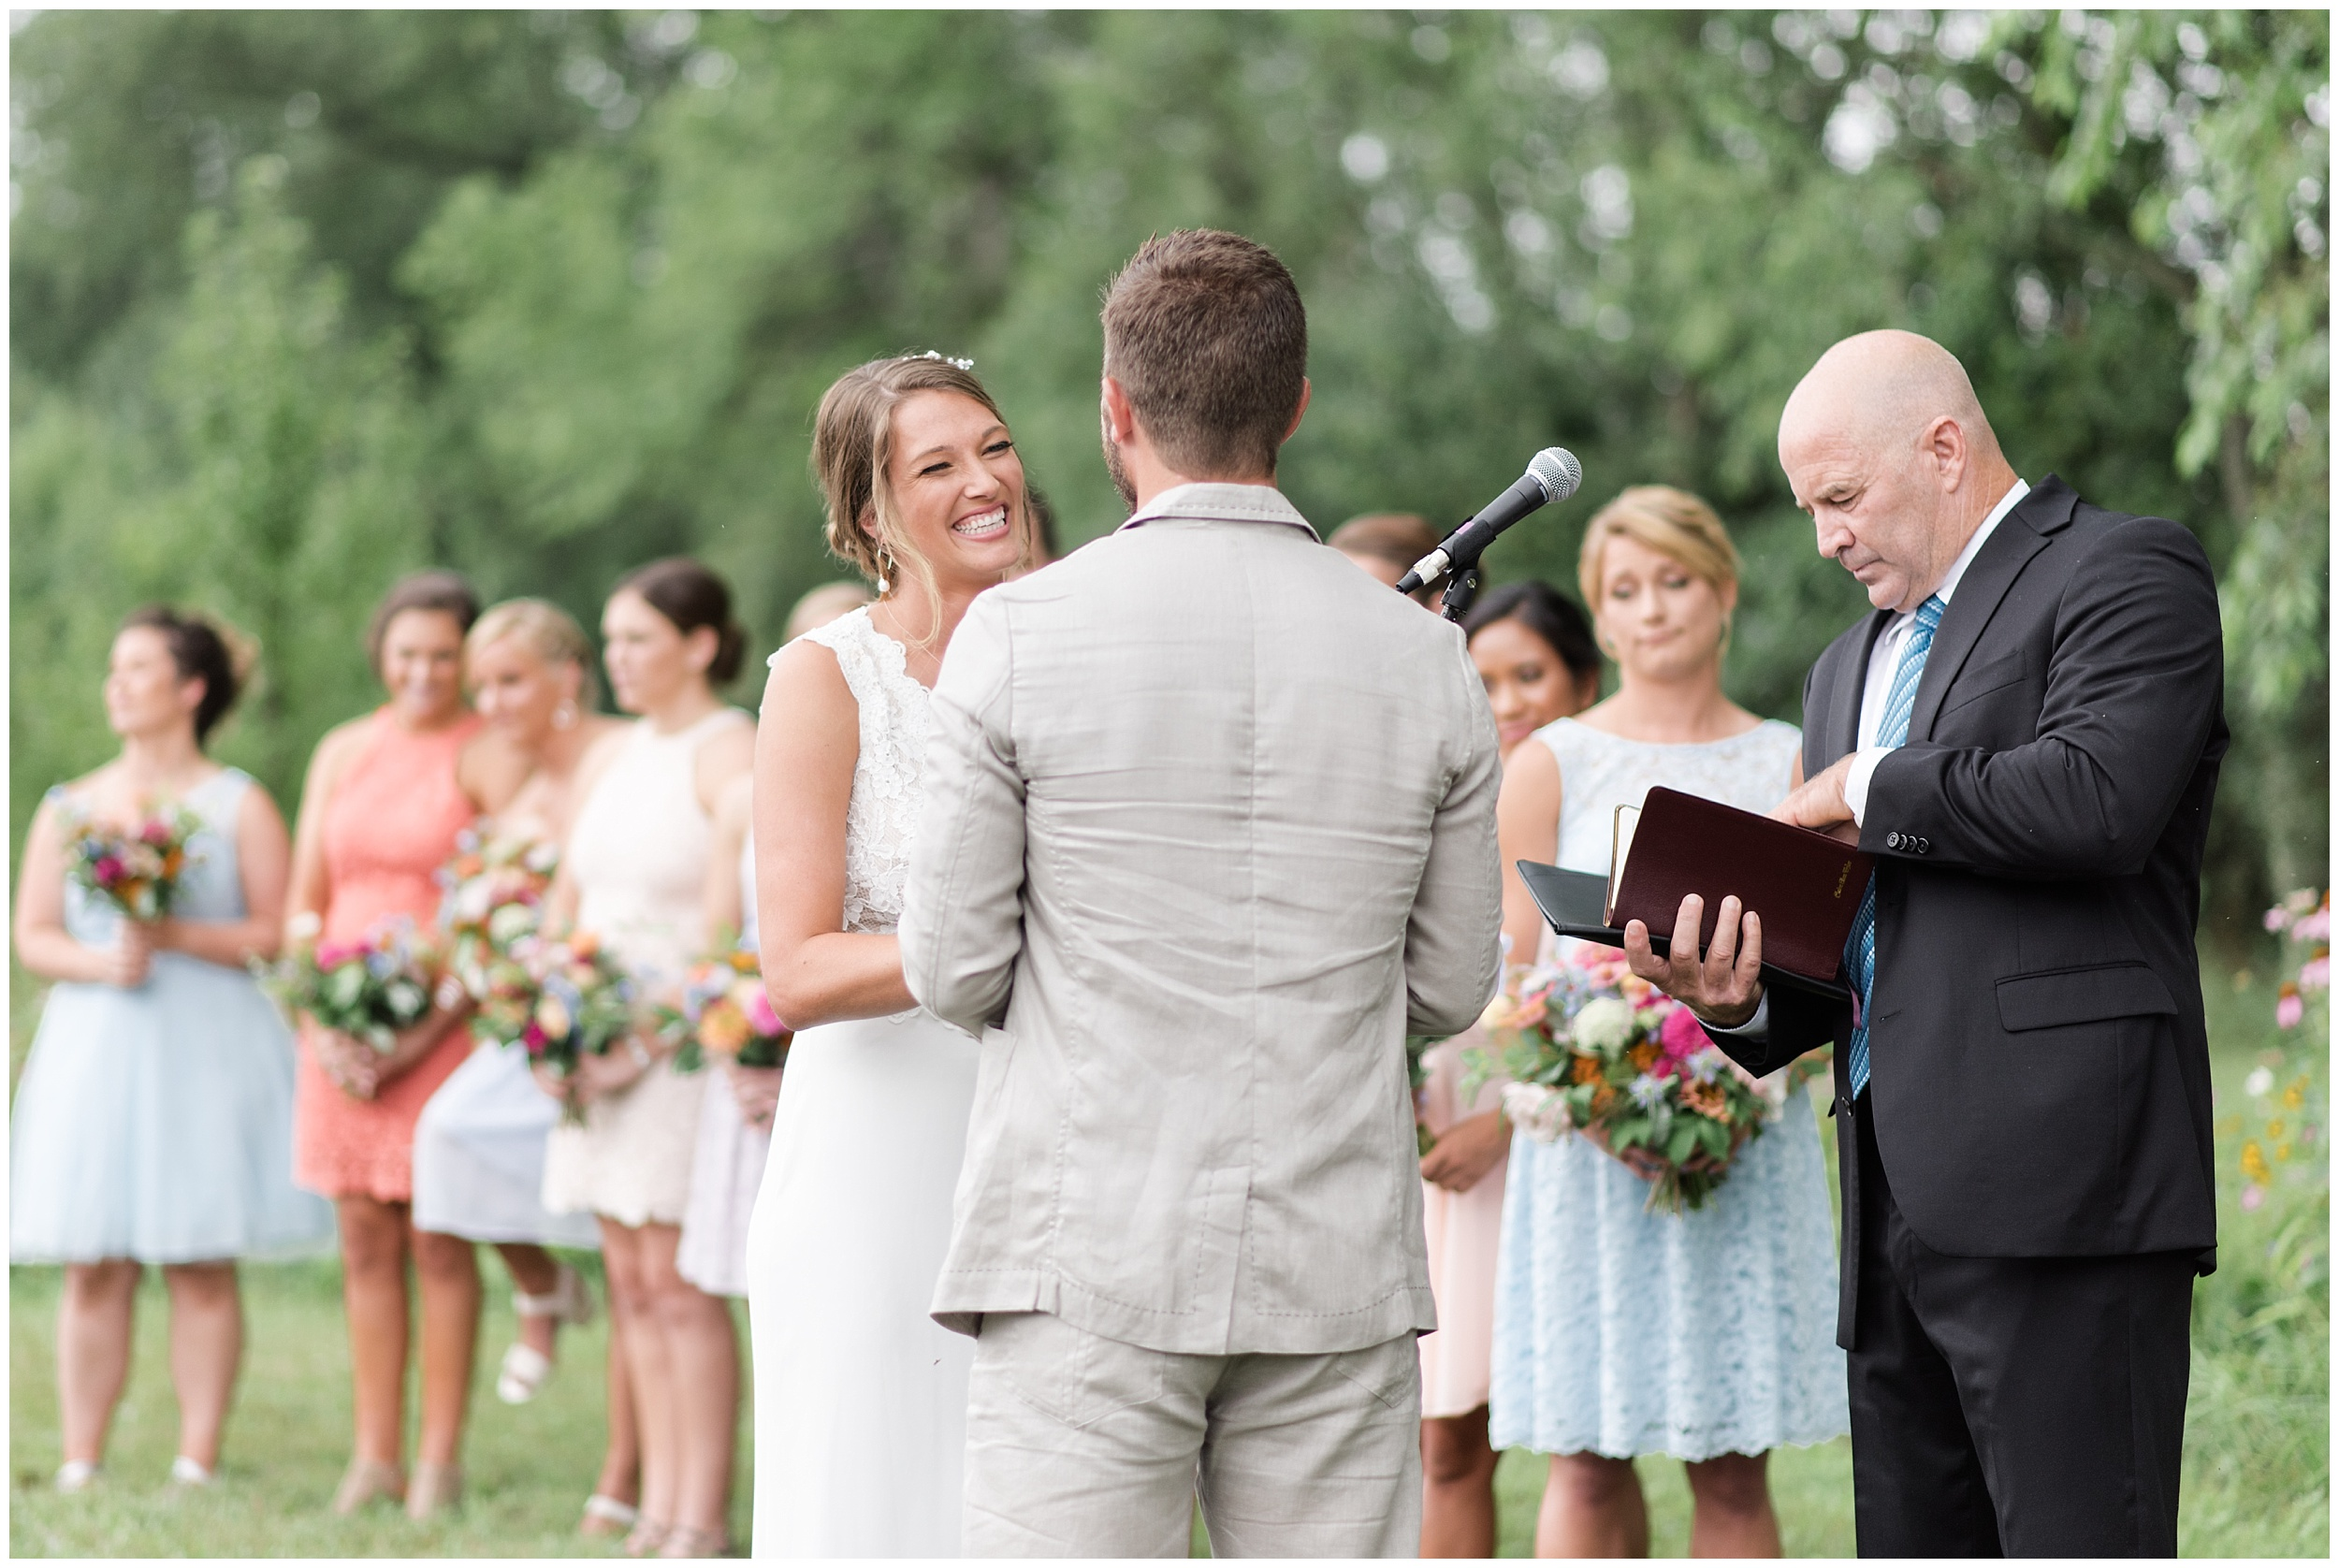 Whimsical-Ethereal-July-Kalamazoo-Wedding-Bright-Airy-Documentary-Milwaukee-Photographer_0035.jpg